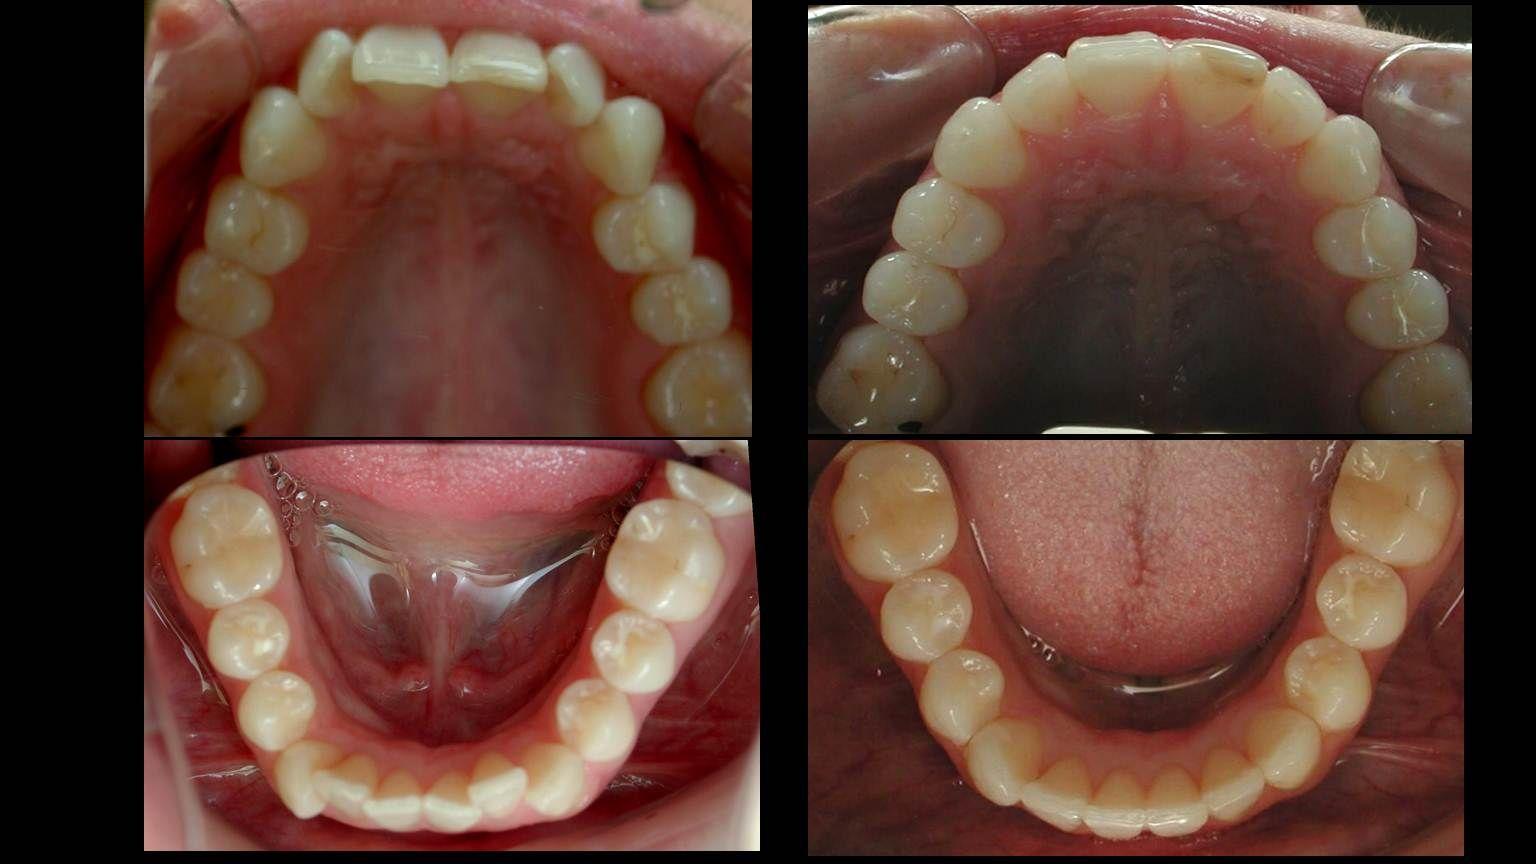 Invisalign can treat and fix most common dental problems